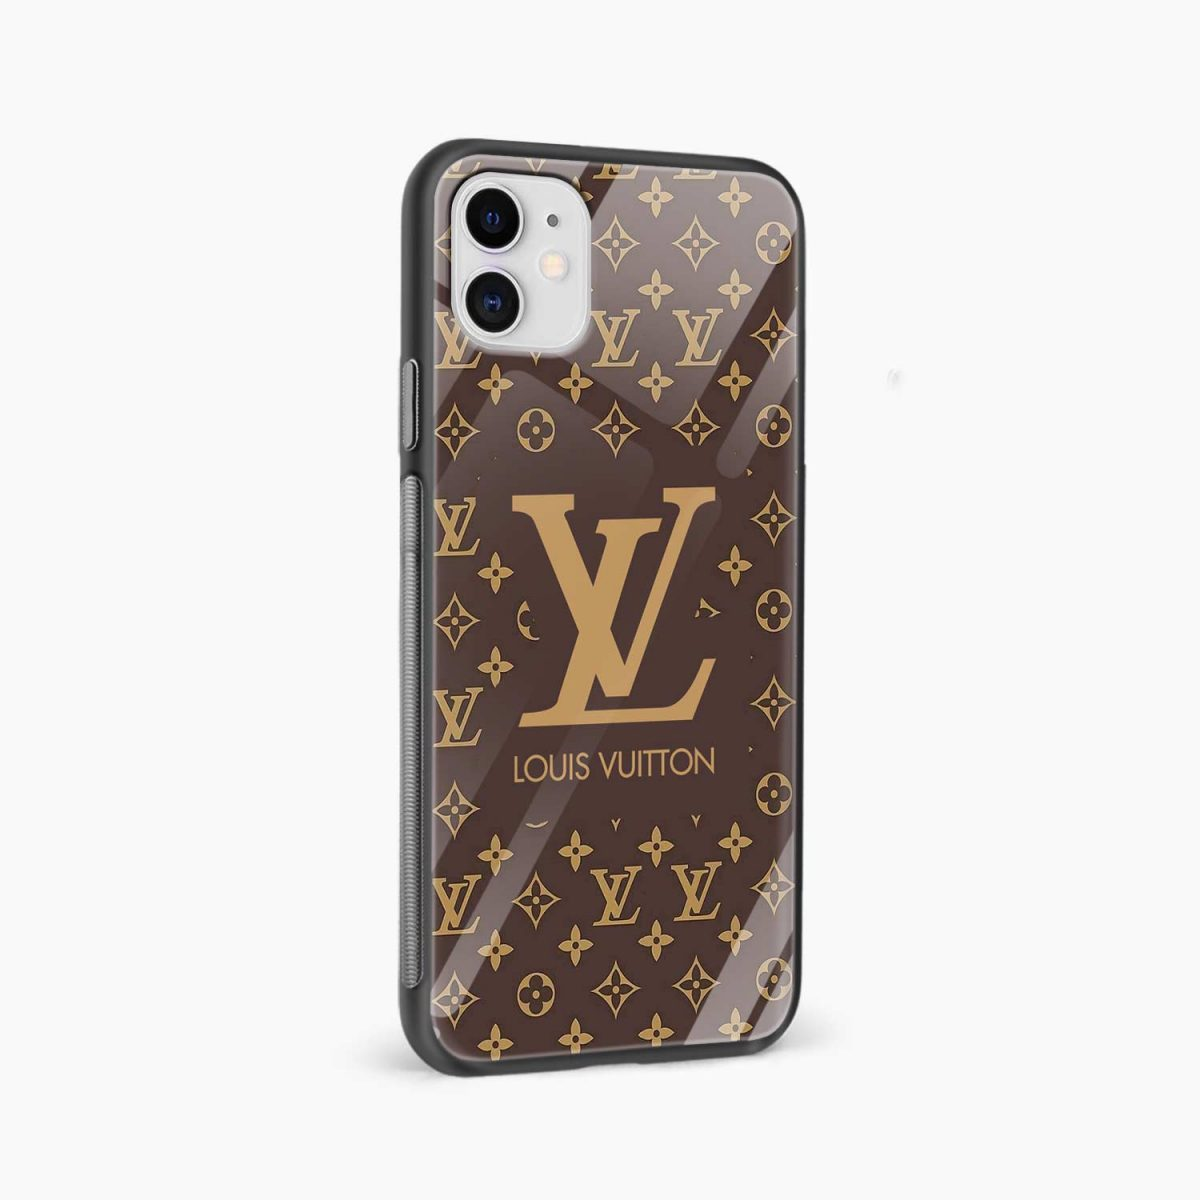 louis vuitton iphone back cover side view